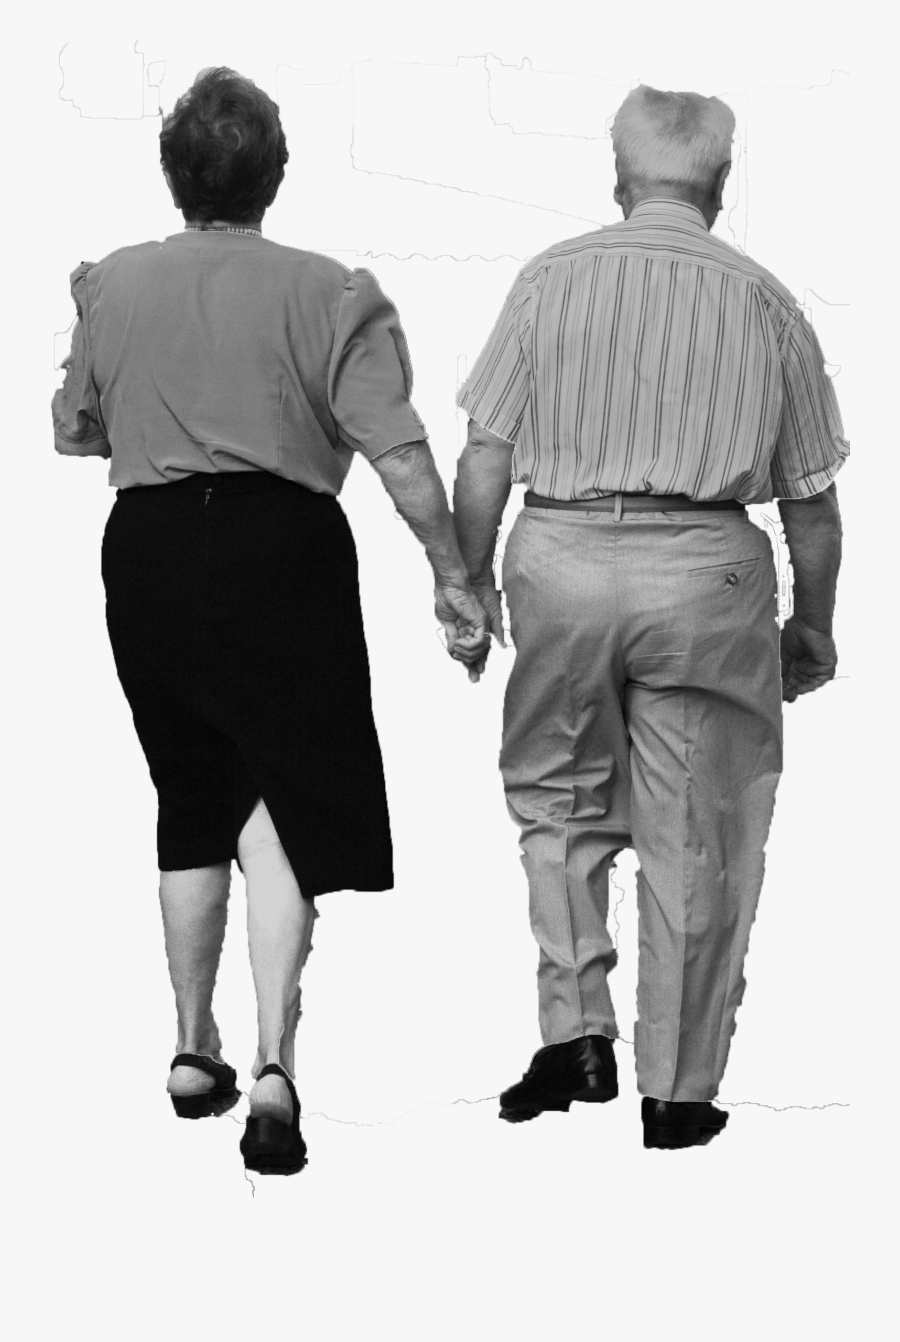 Old Couple Walking - Old Man Transparent Background, Transparent Clipart